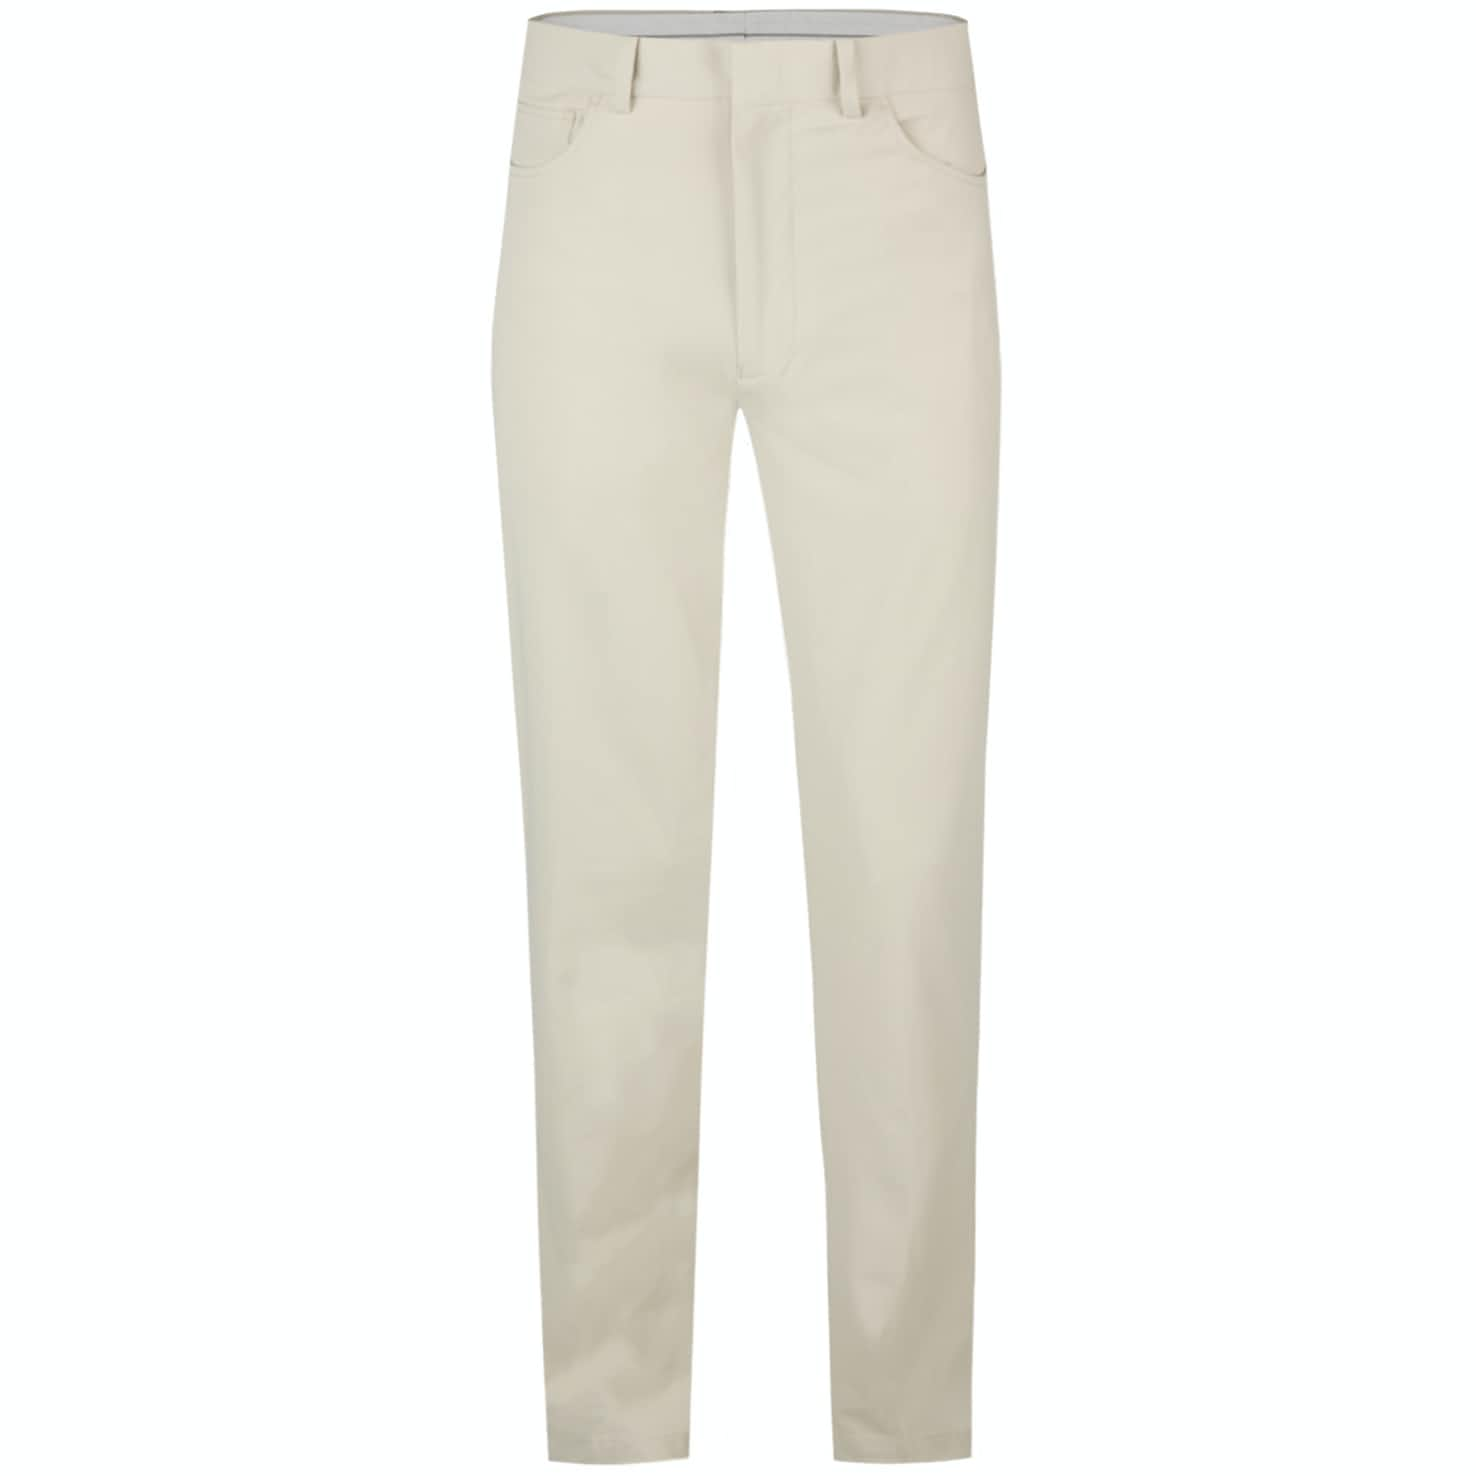 Five Pocket Athletic Fit Pants Basic Sand - AW19